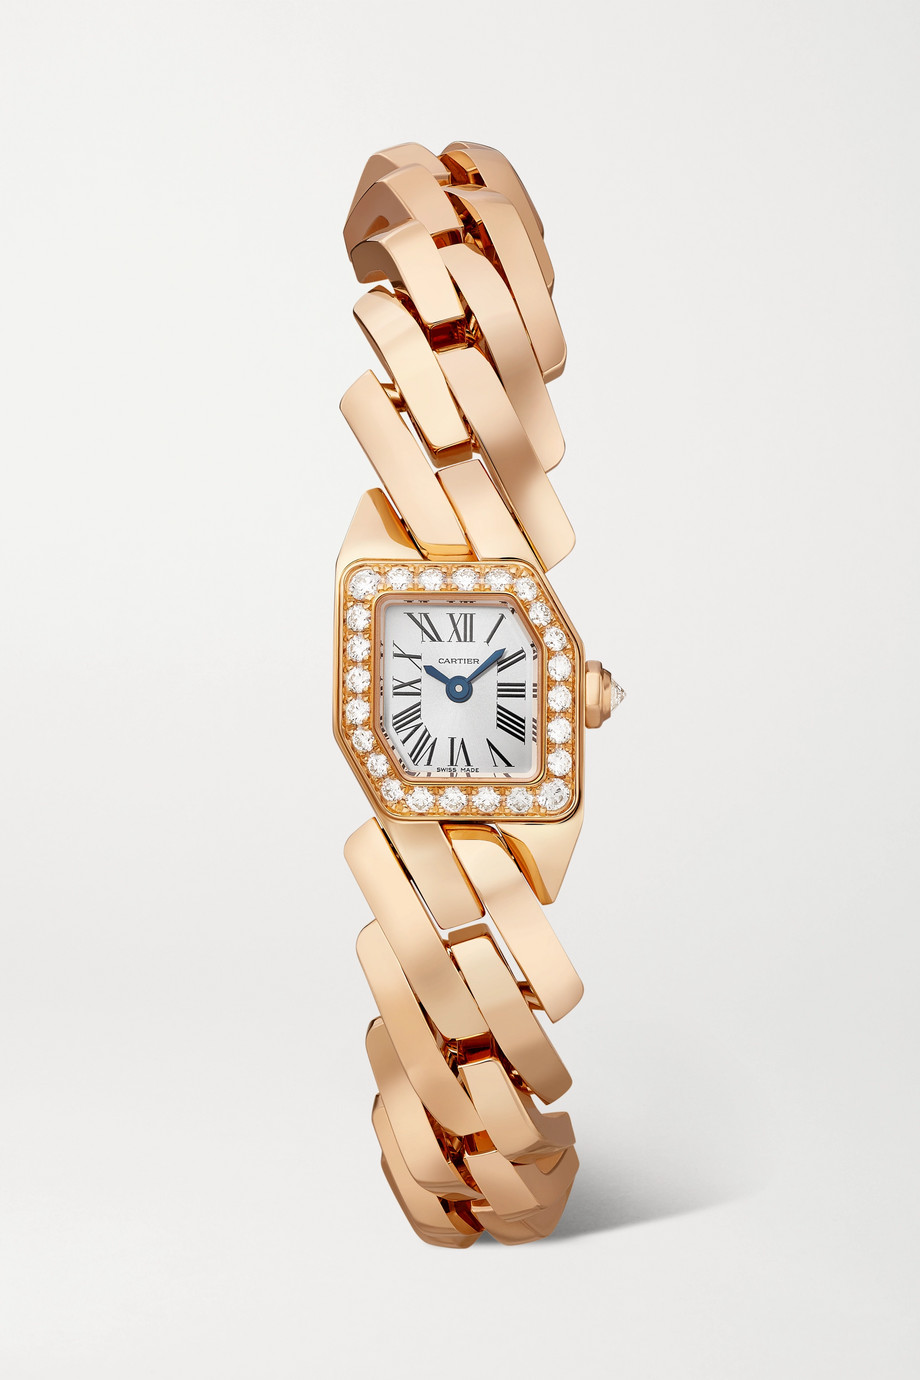 Cartier Maillon de Cartier 16mm 18-karat rose gold and diamond watch